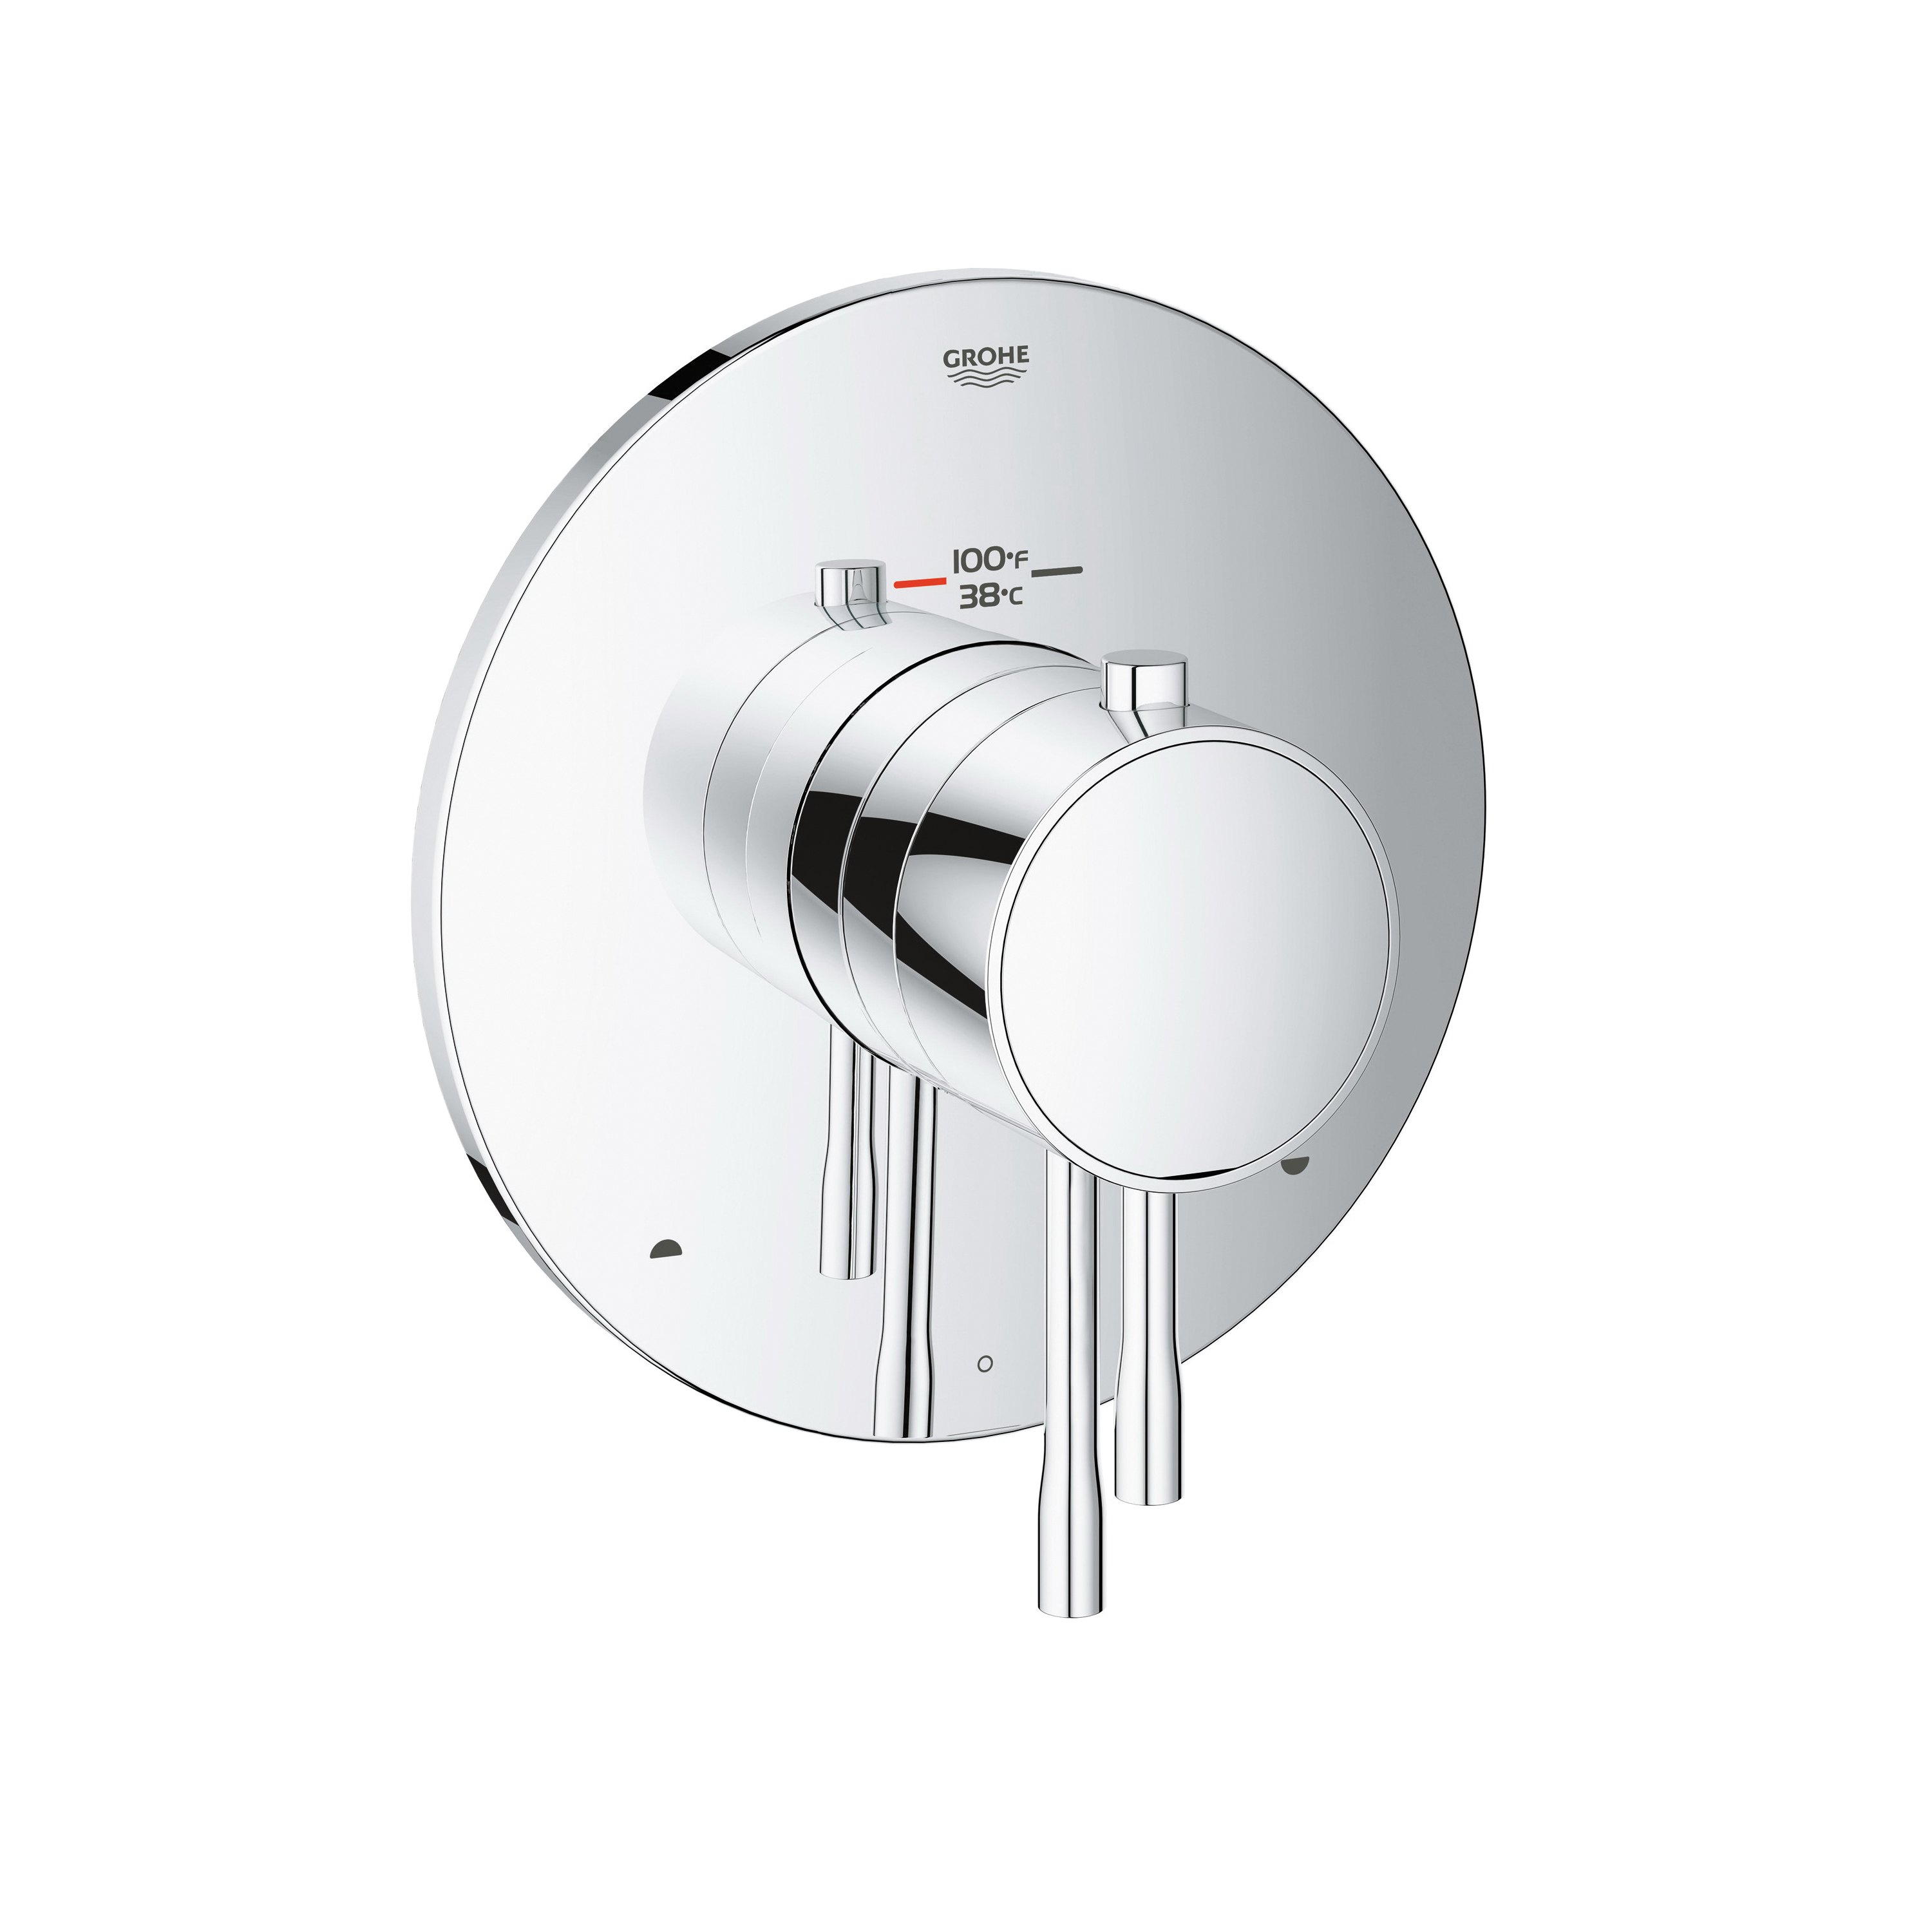 GROHE 19988001 Essence™ New 2-Function Trim, Hand Shower Yes/No: No, StarLight® Chrome Plated